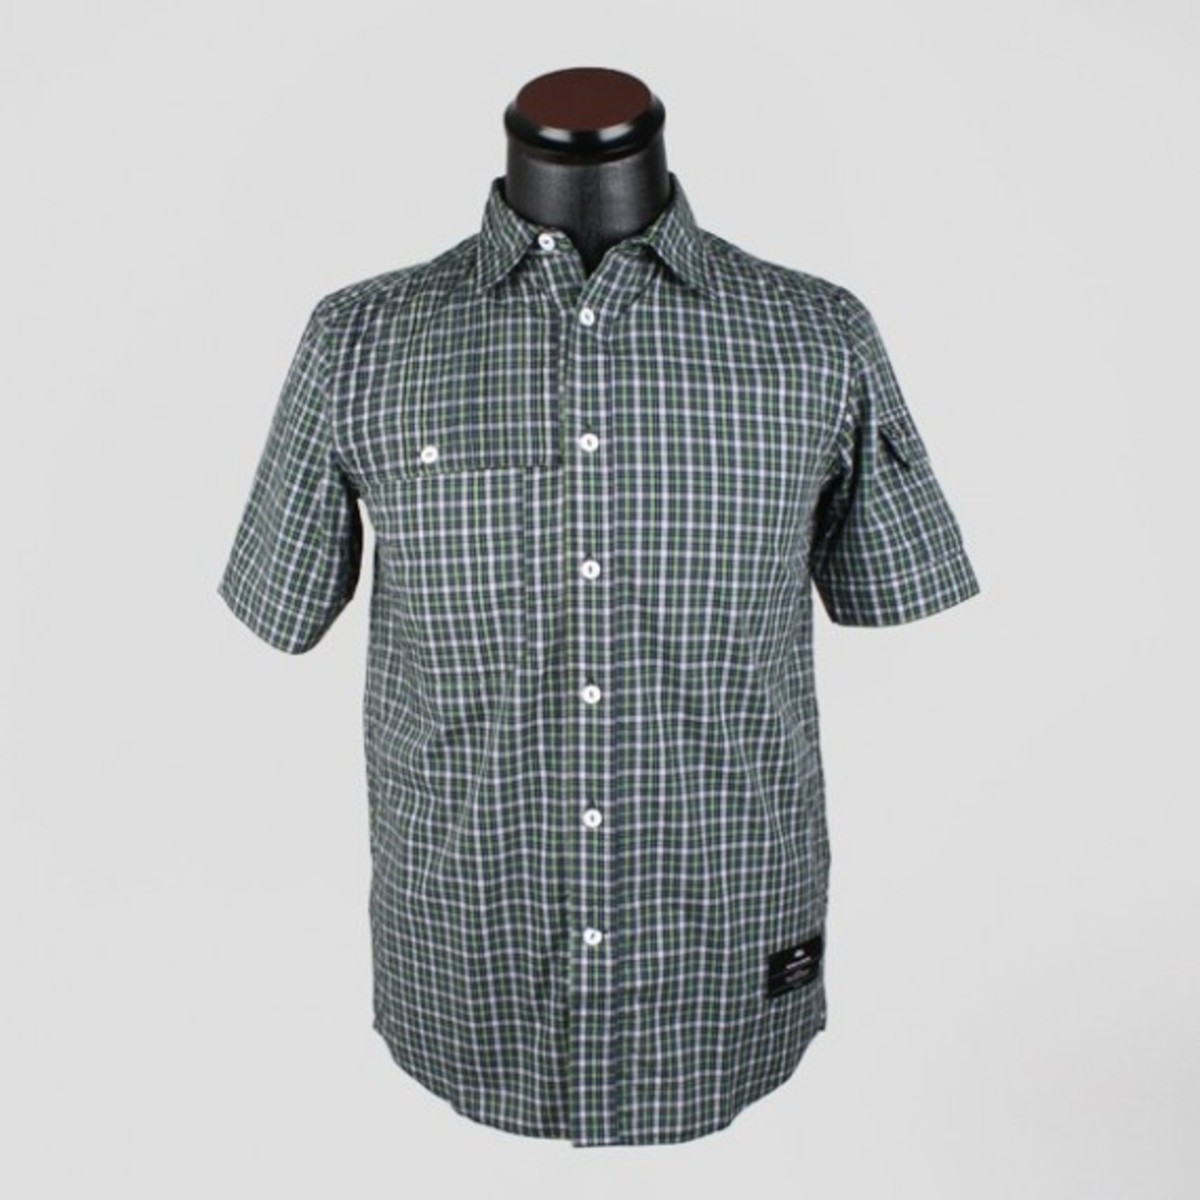 STPL-West-Short-Sleeve-Button-Shirt-SP11_1